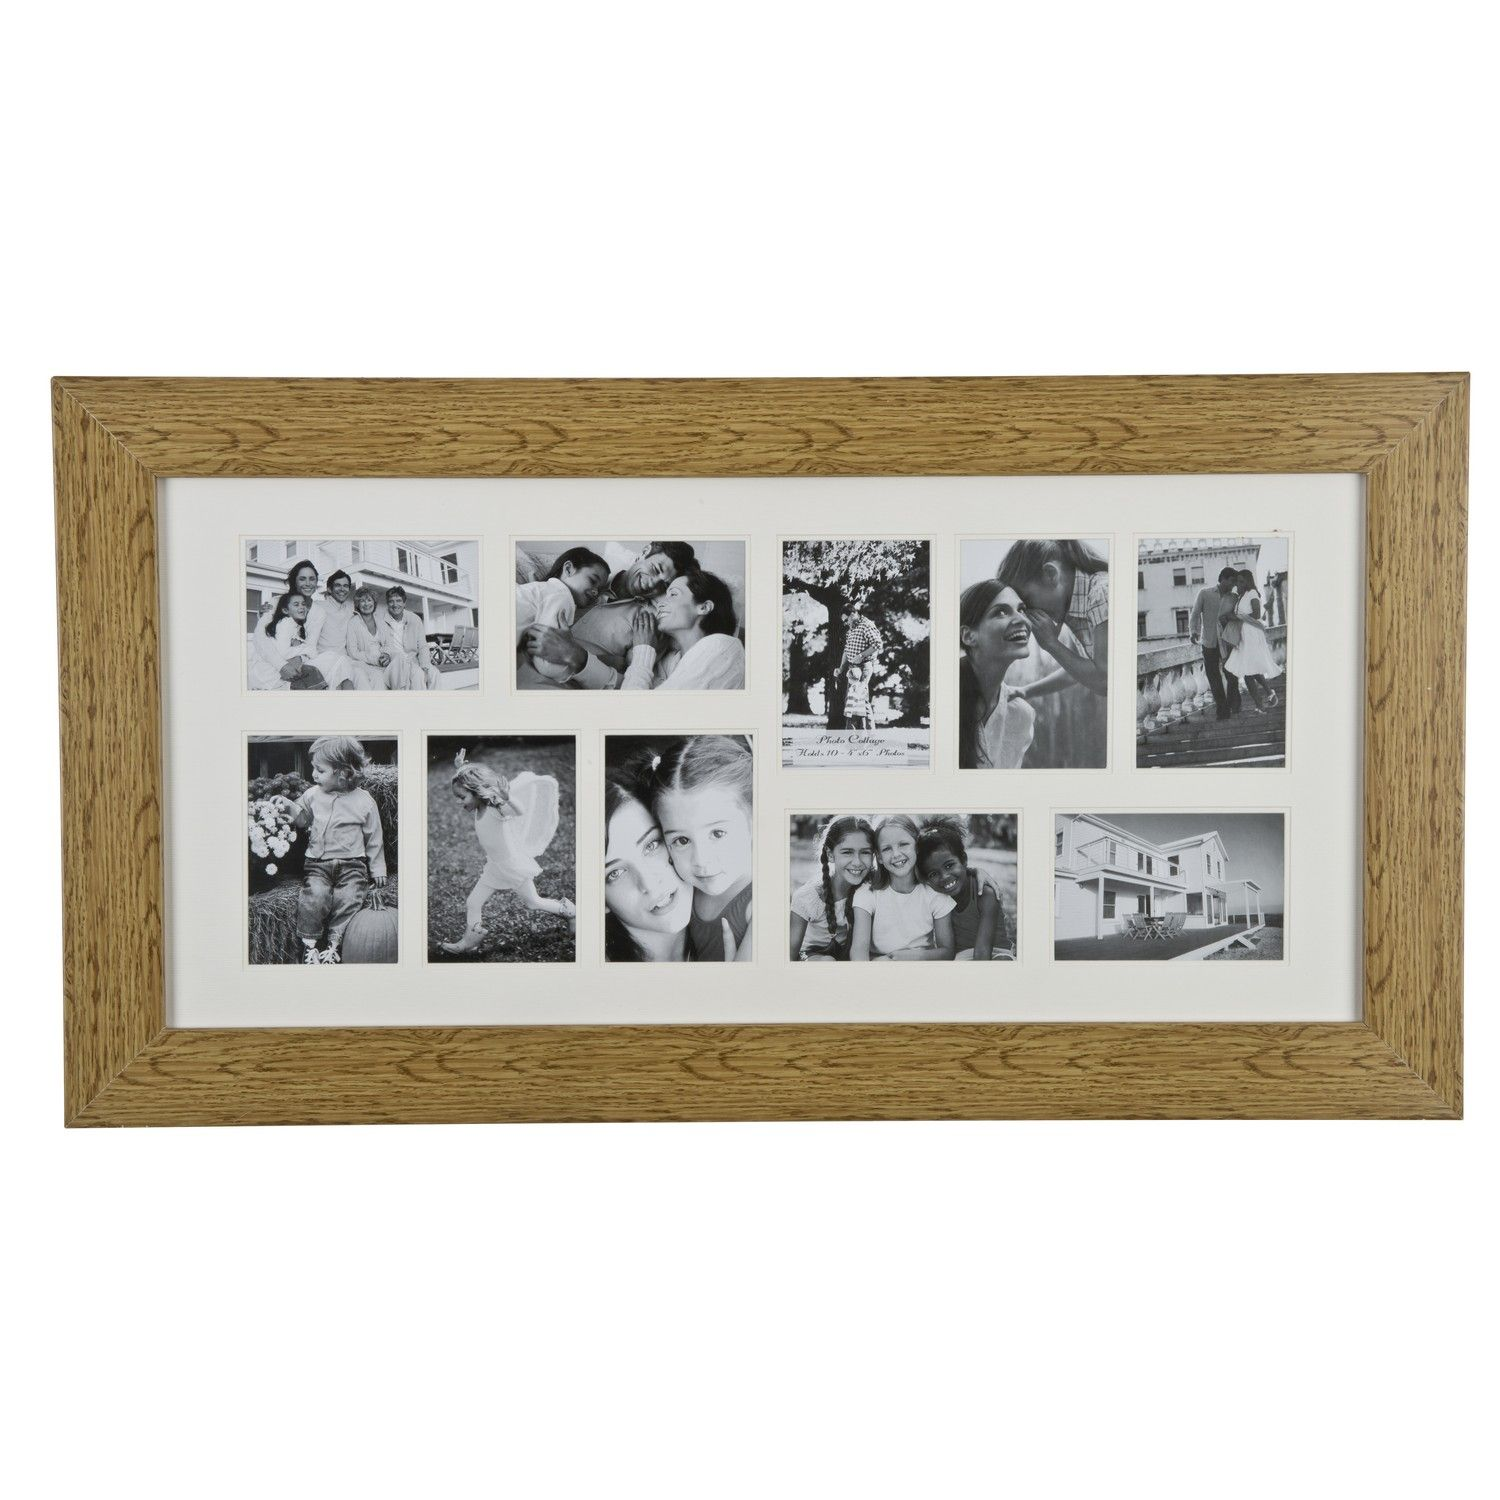 Shop Furniture Curtains Bedding Diy Garden And More Frame Photo Frame Gallery Photo Collage